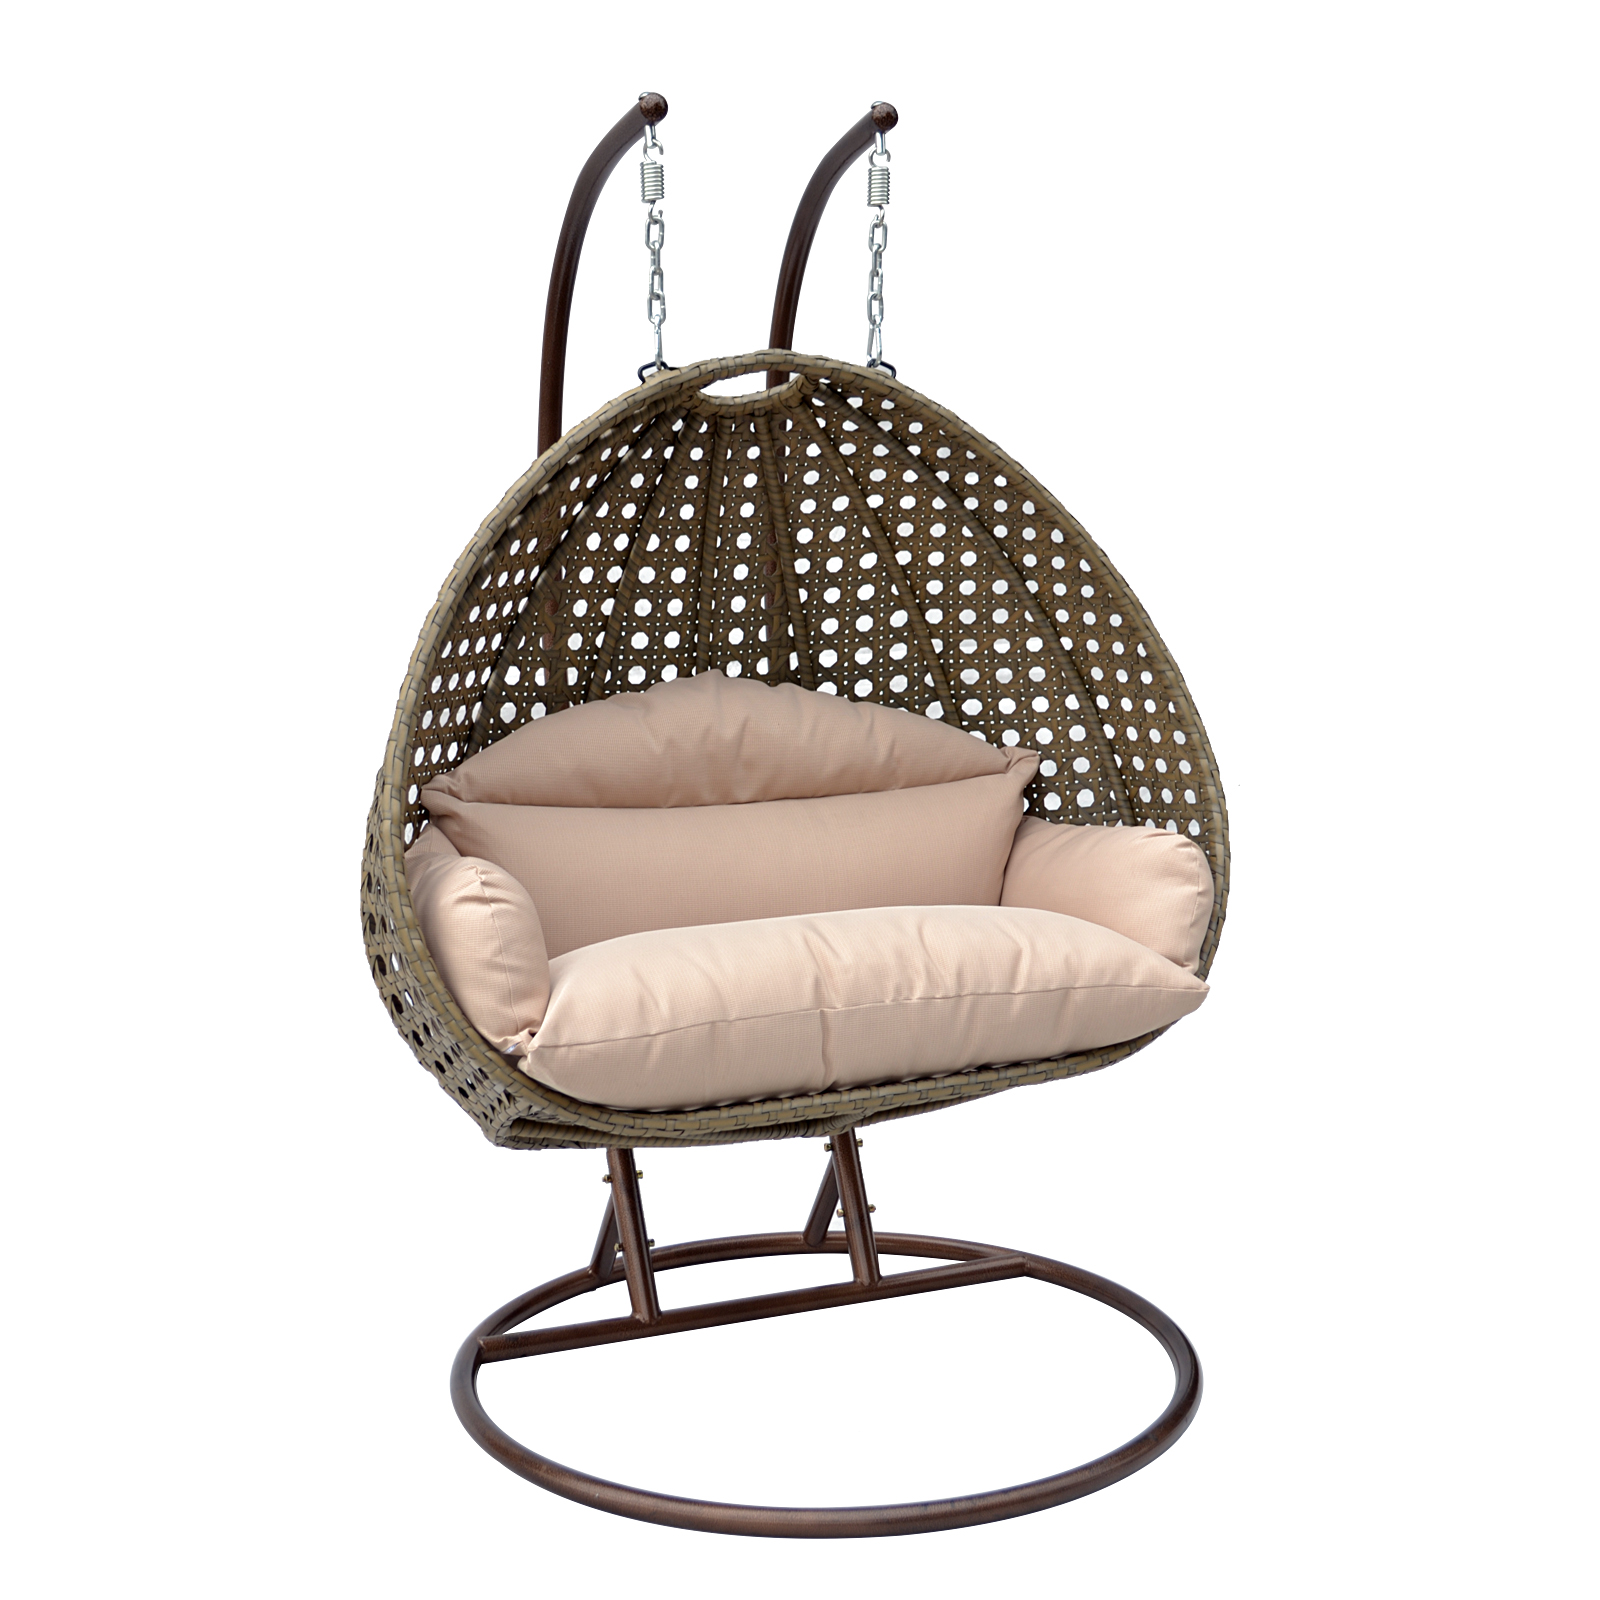 Rattan Swing Chair Egg Chair 2 Person Wicker Egg Basket Swing Chair Patio Outdoor